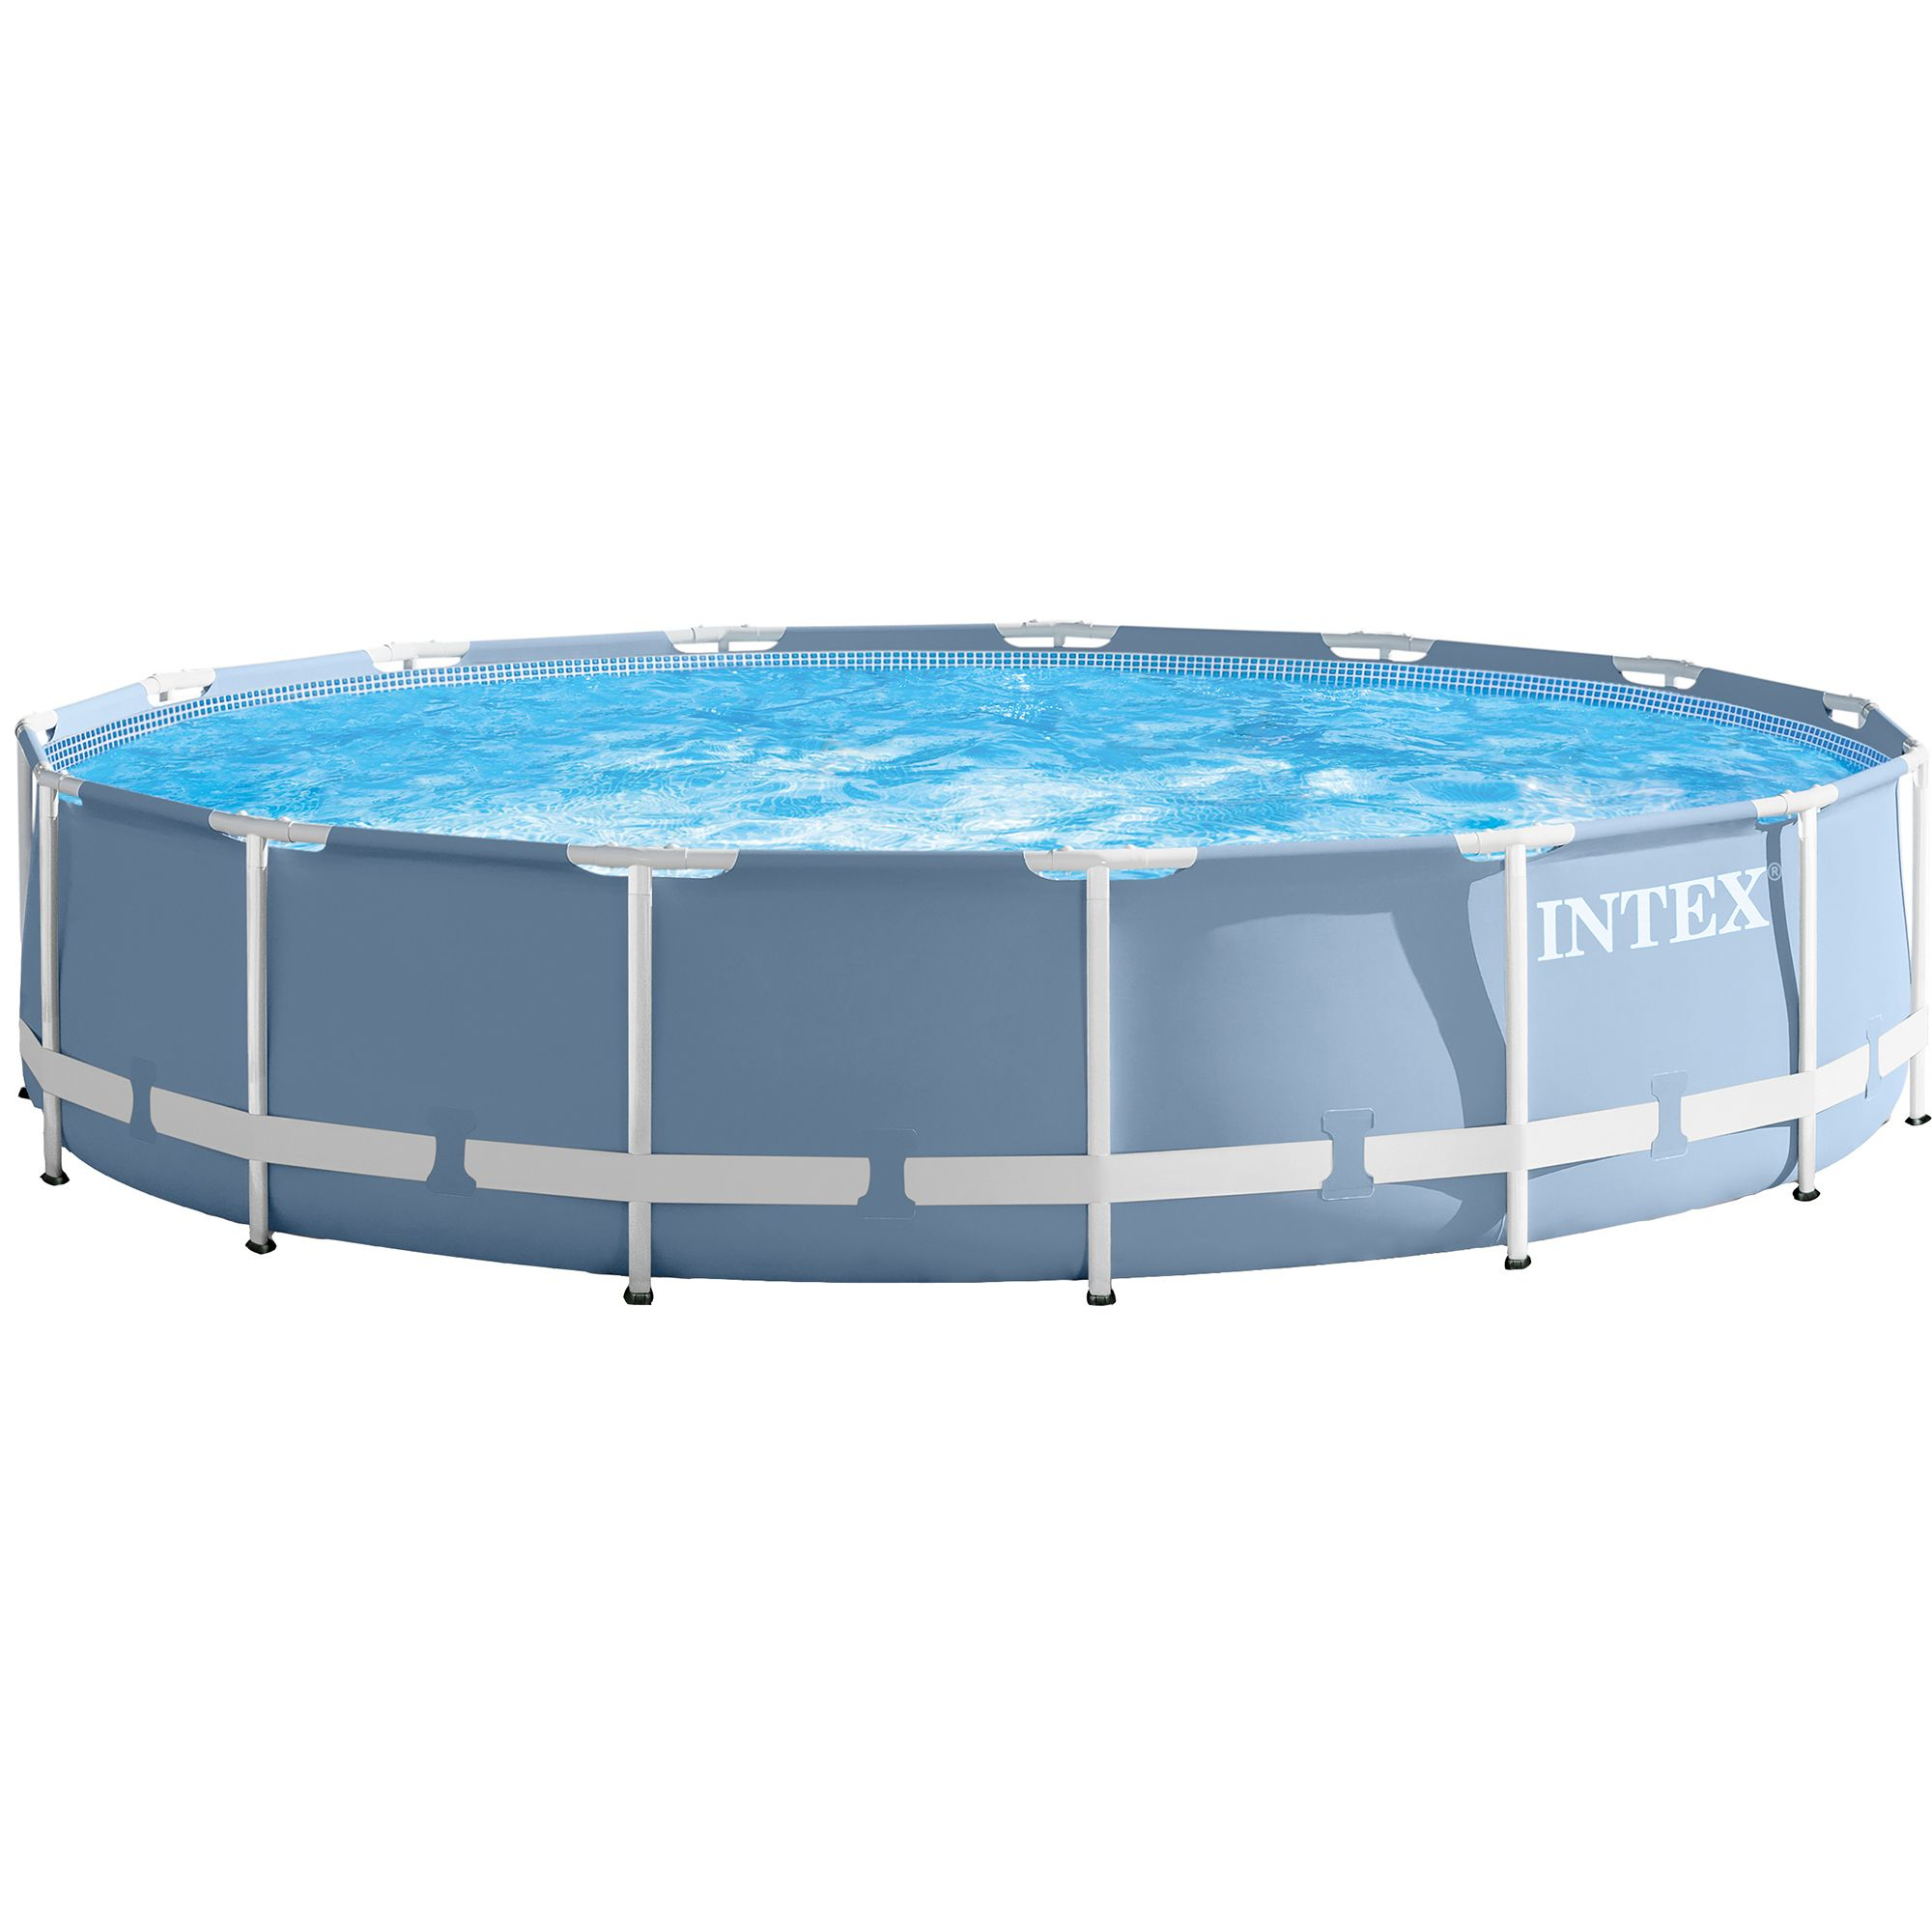 Piscina Intex Prism Frame Rotunda, 4.57M X 84Cm à Piscine Intex 3.66